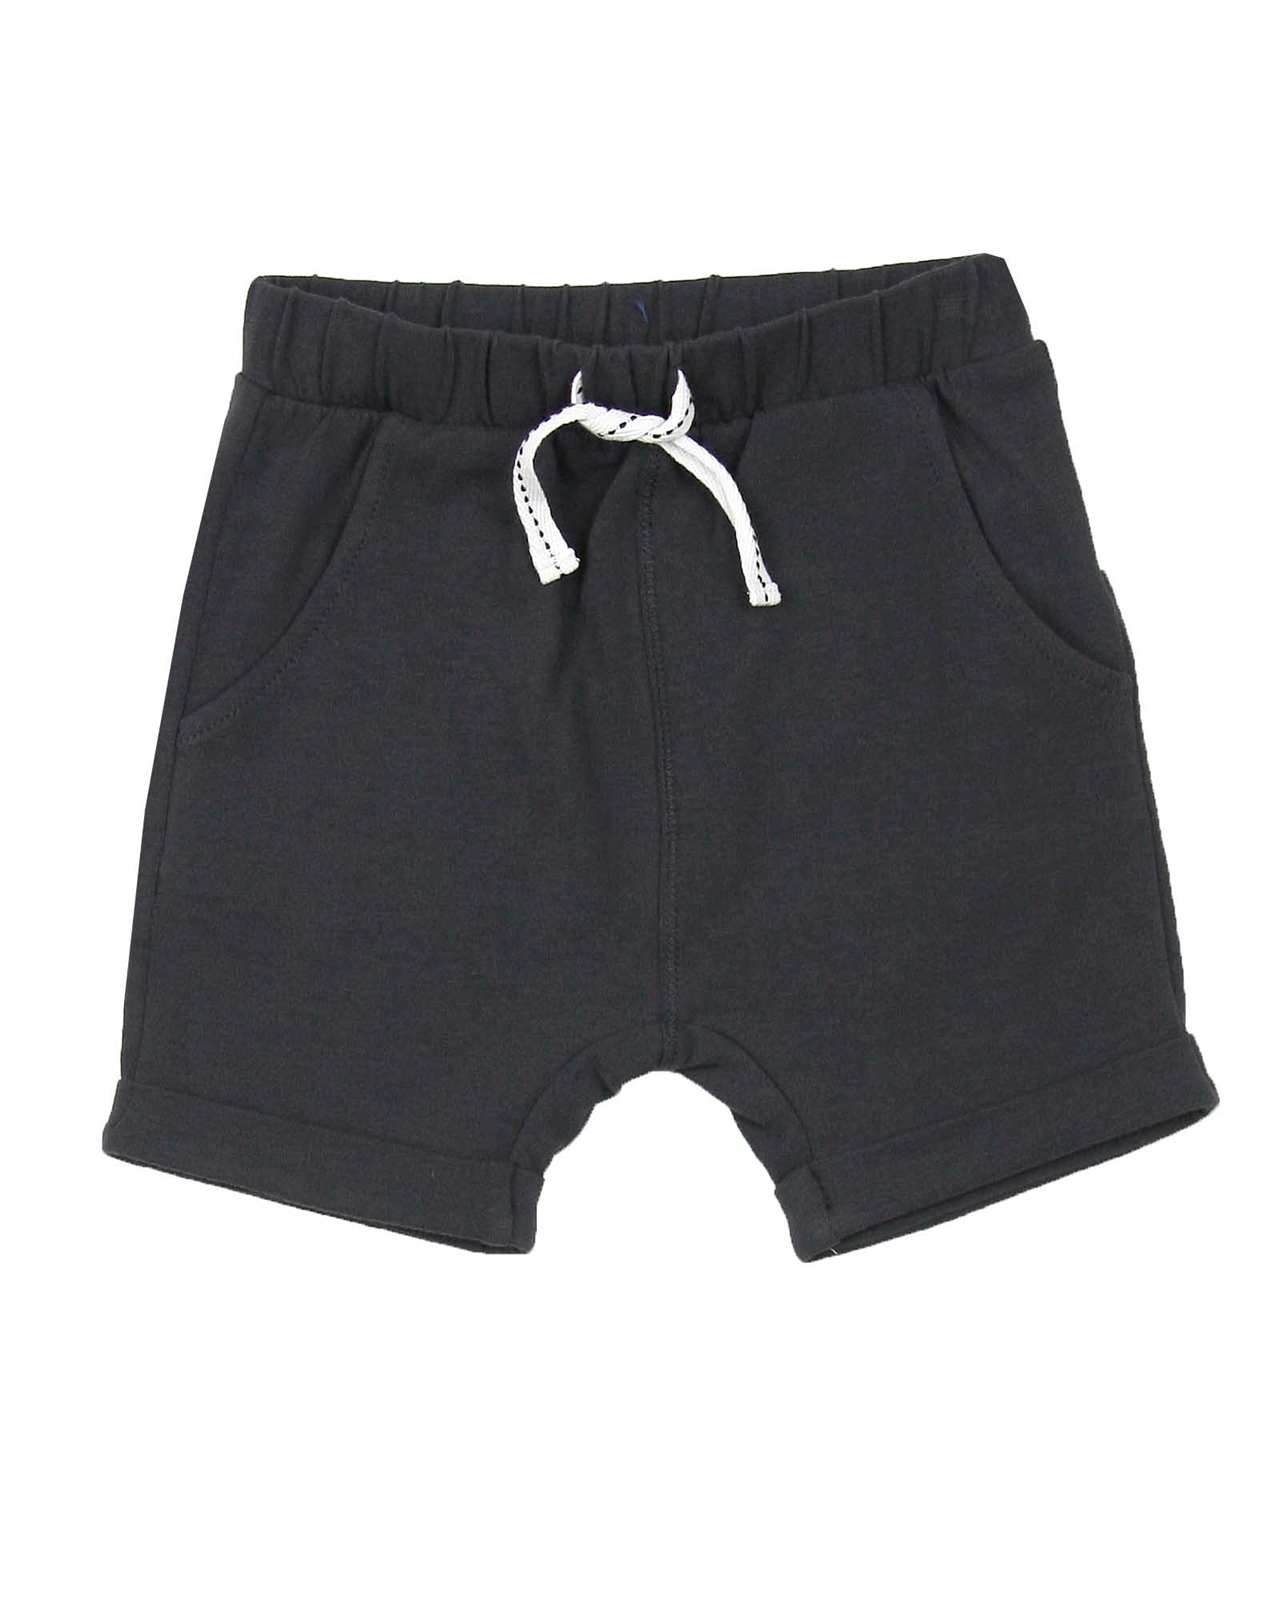 Miles Baby Boys Cuffed Jersey Shorts Sizes 6M-4